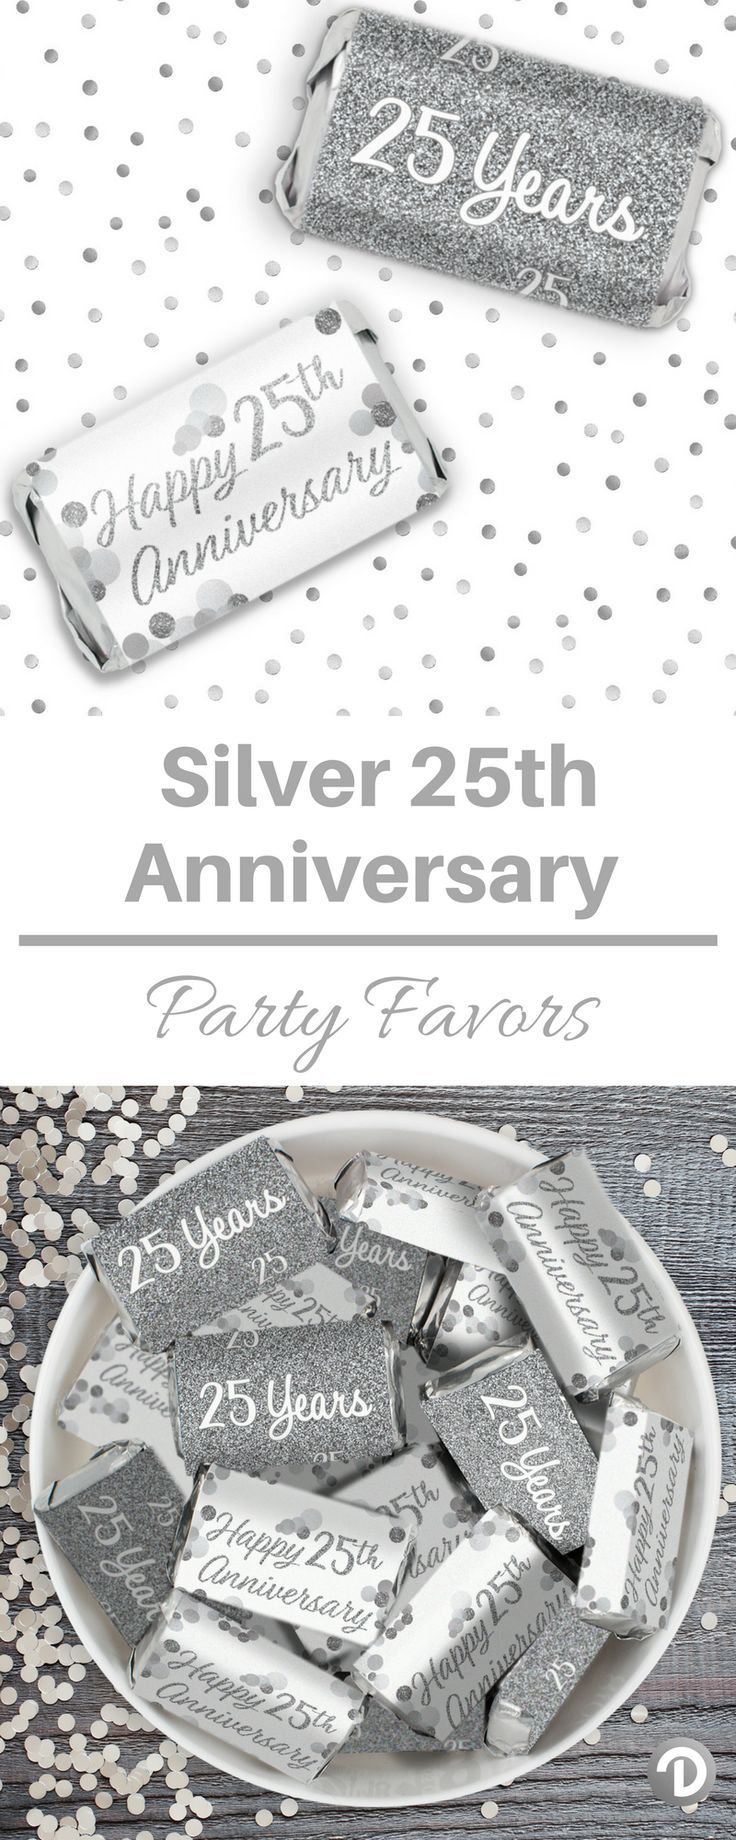 28 best 25th Wedding Anniversary Party images on Pinterest | Silver ...